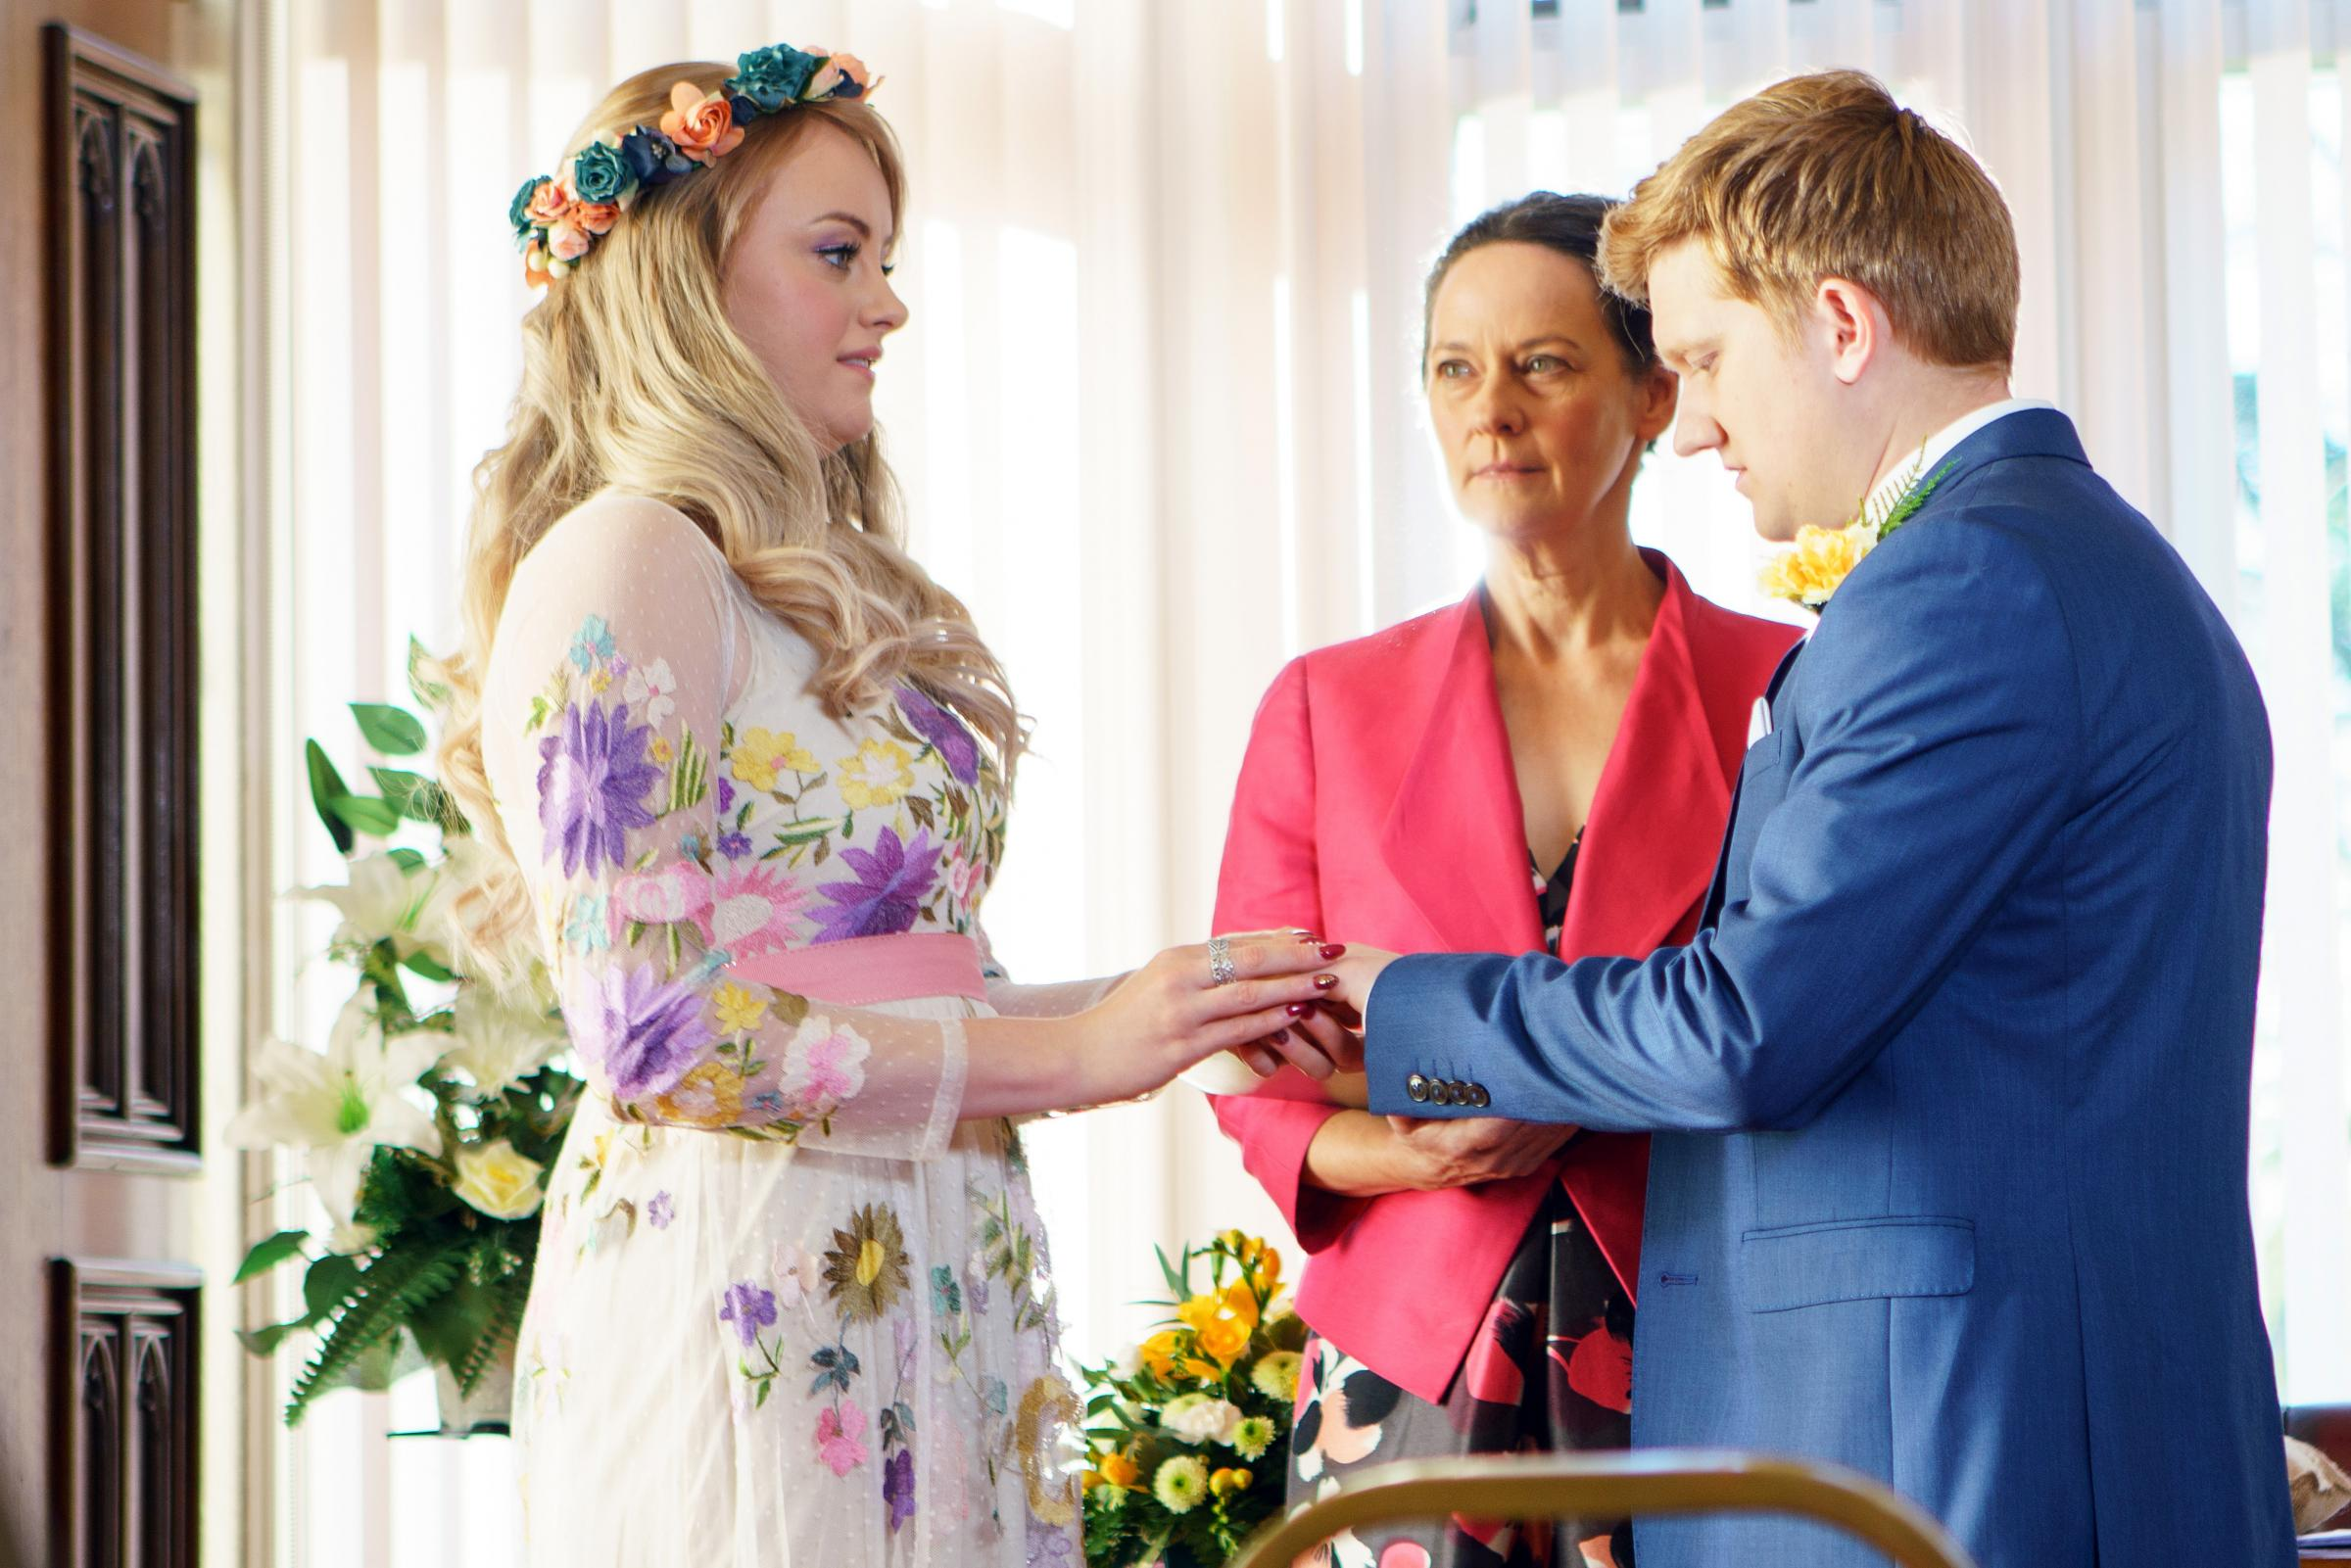 As the wedding guests gather at the register office will Daniel make his move and can Sinead Tinker [KATIE McGLYNN] ignore the doubts in her heart and say I do to Chesney Brown [SAM ASTON]